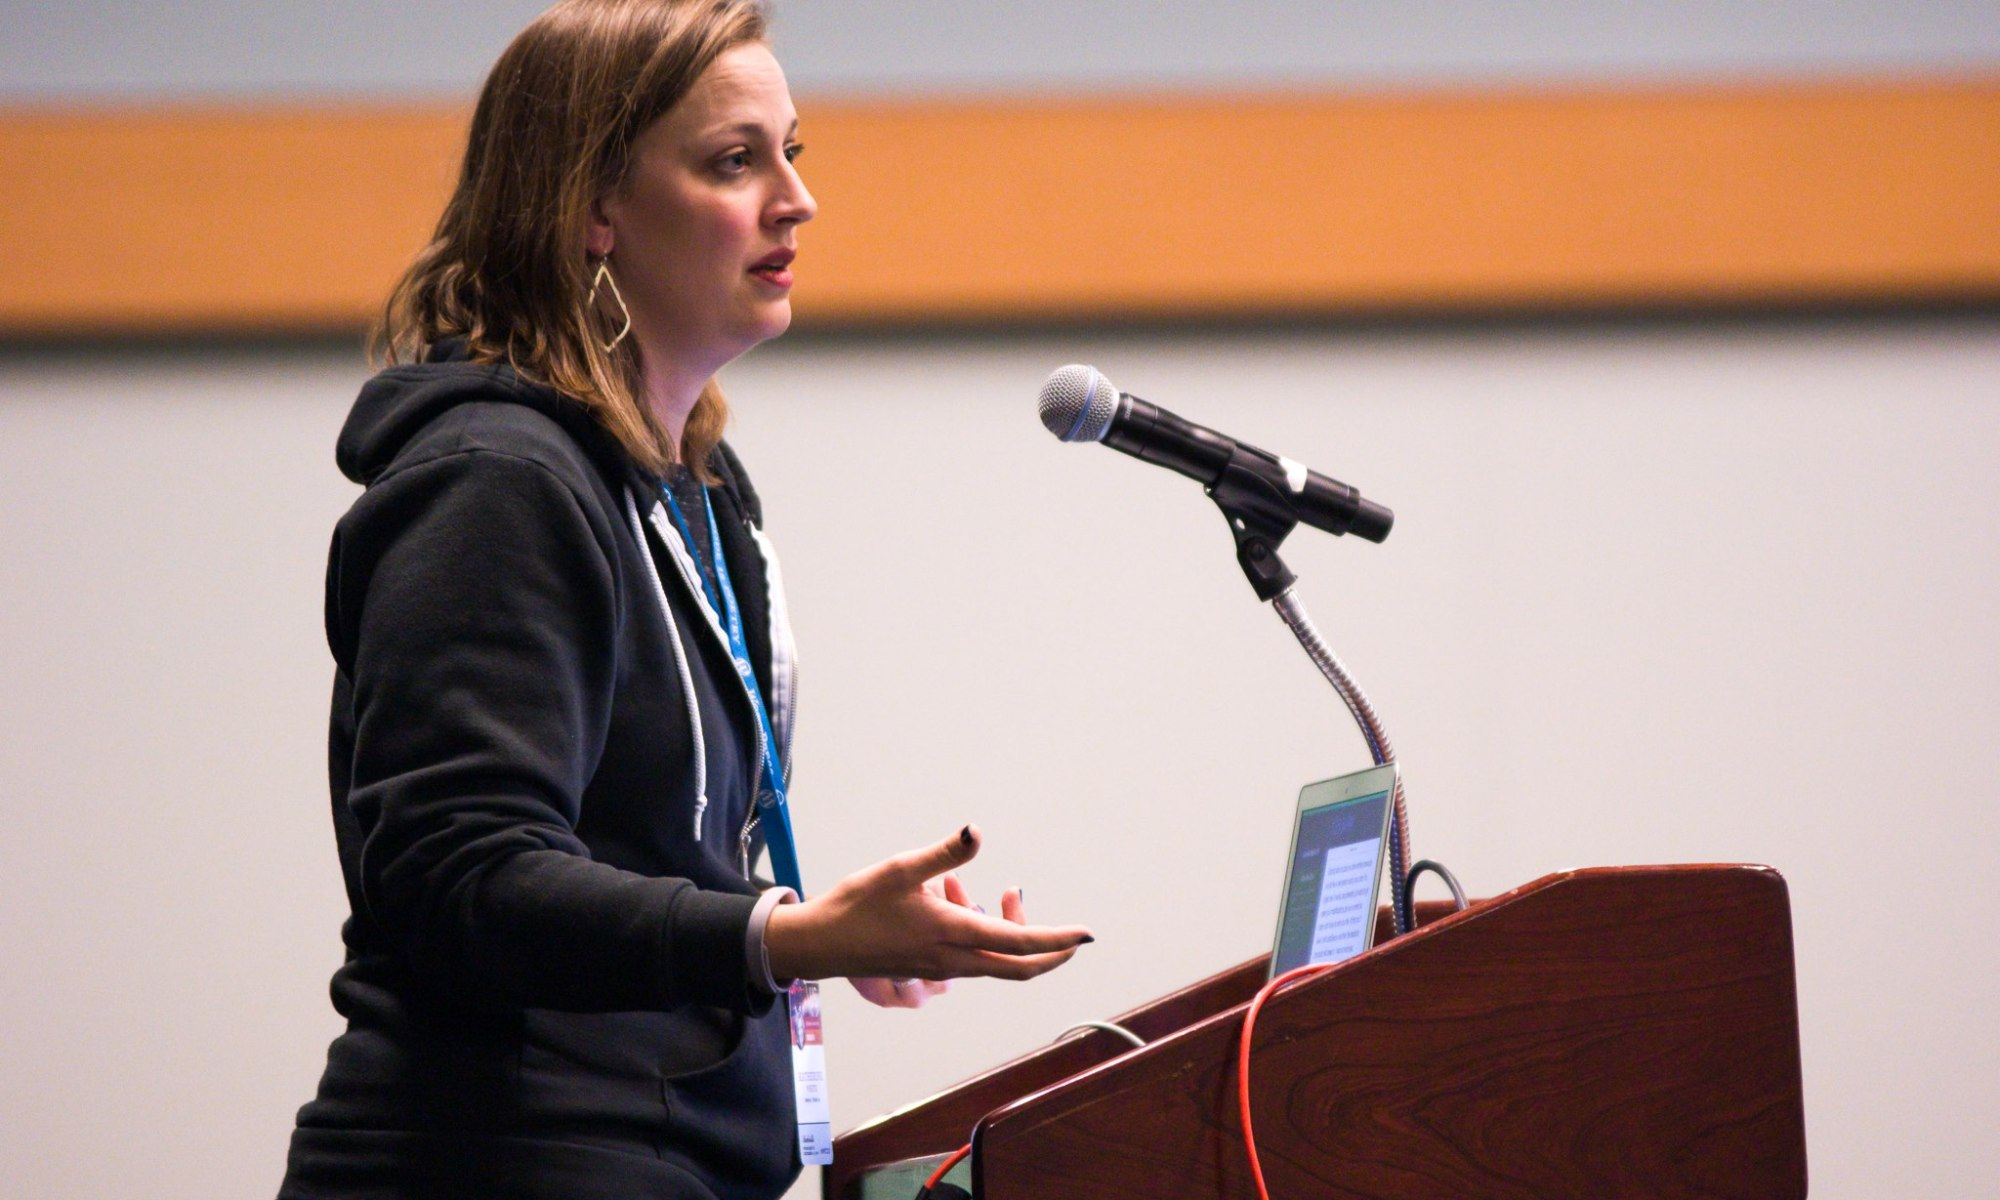 Katherine White speaking at WCUS 2017